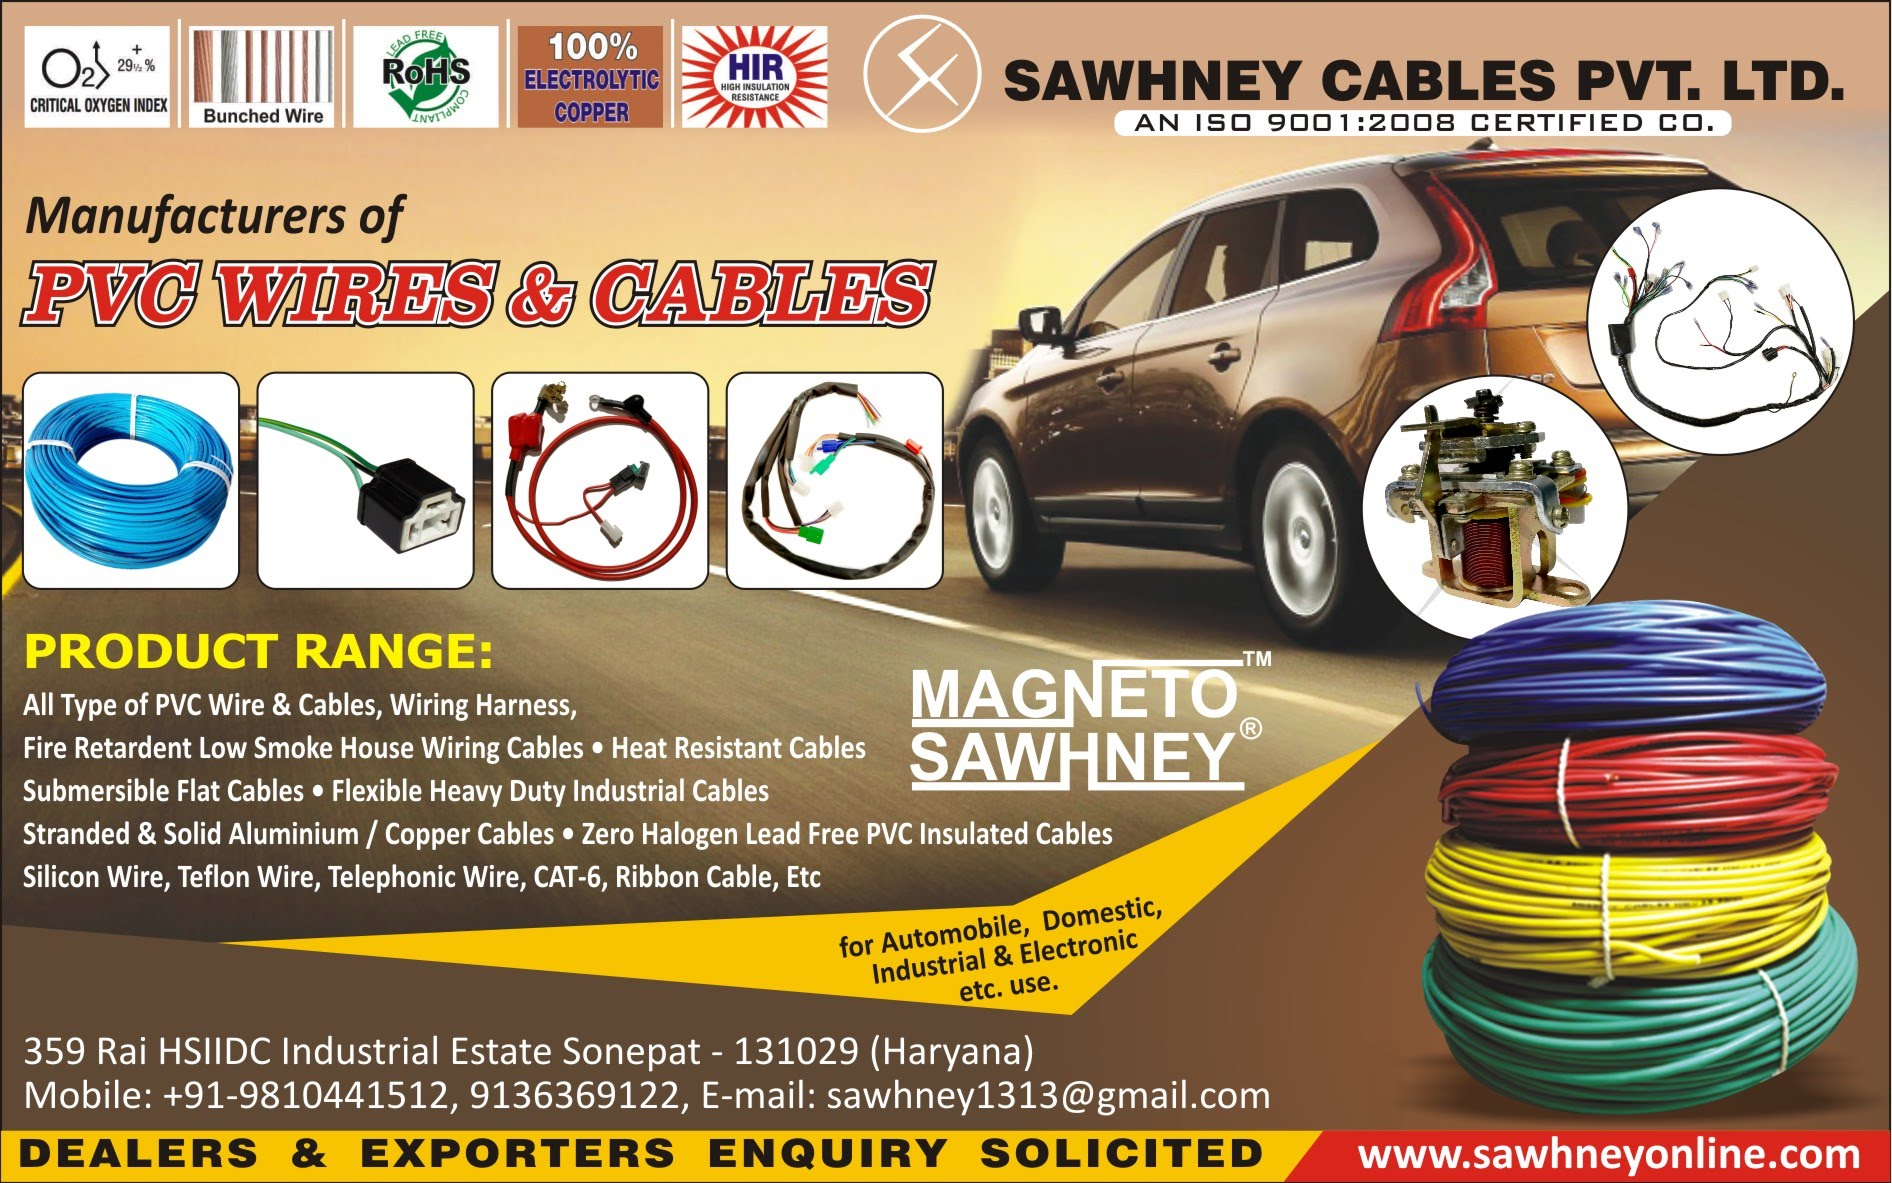 All Kinds Of Pvc Wires Cables Wiring Harness Electrical Auto Manufacturers India 919136369122